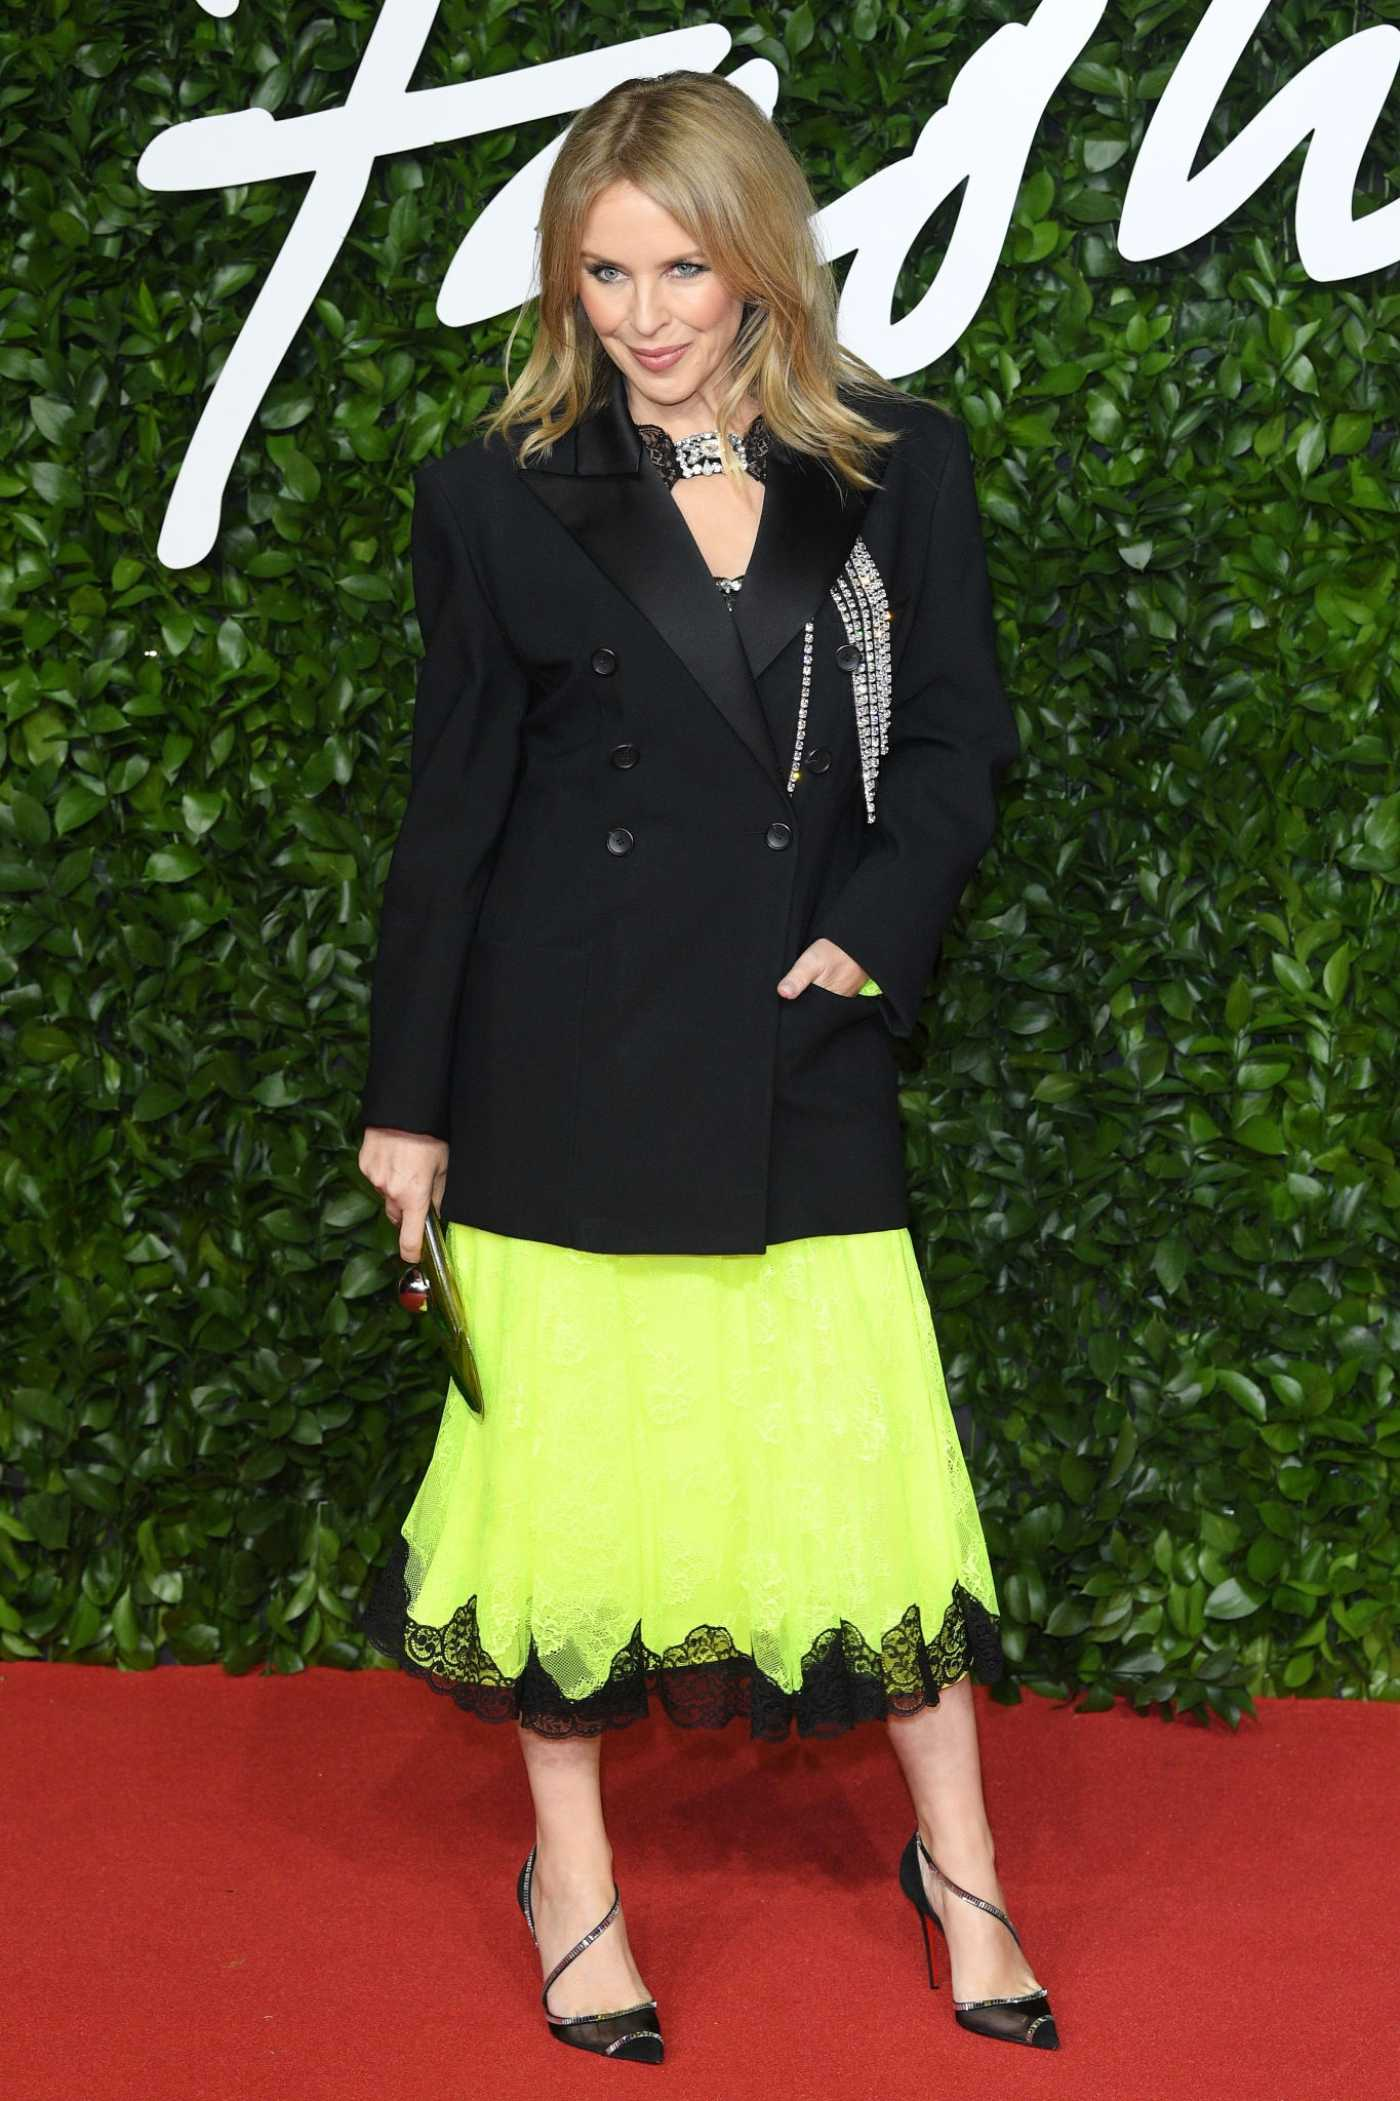 Kylie Minogue Attends 2019 Fashion Awards at Royal Albert Hall in London 12/02/2019